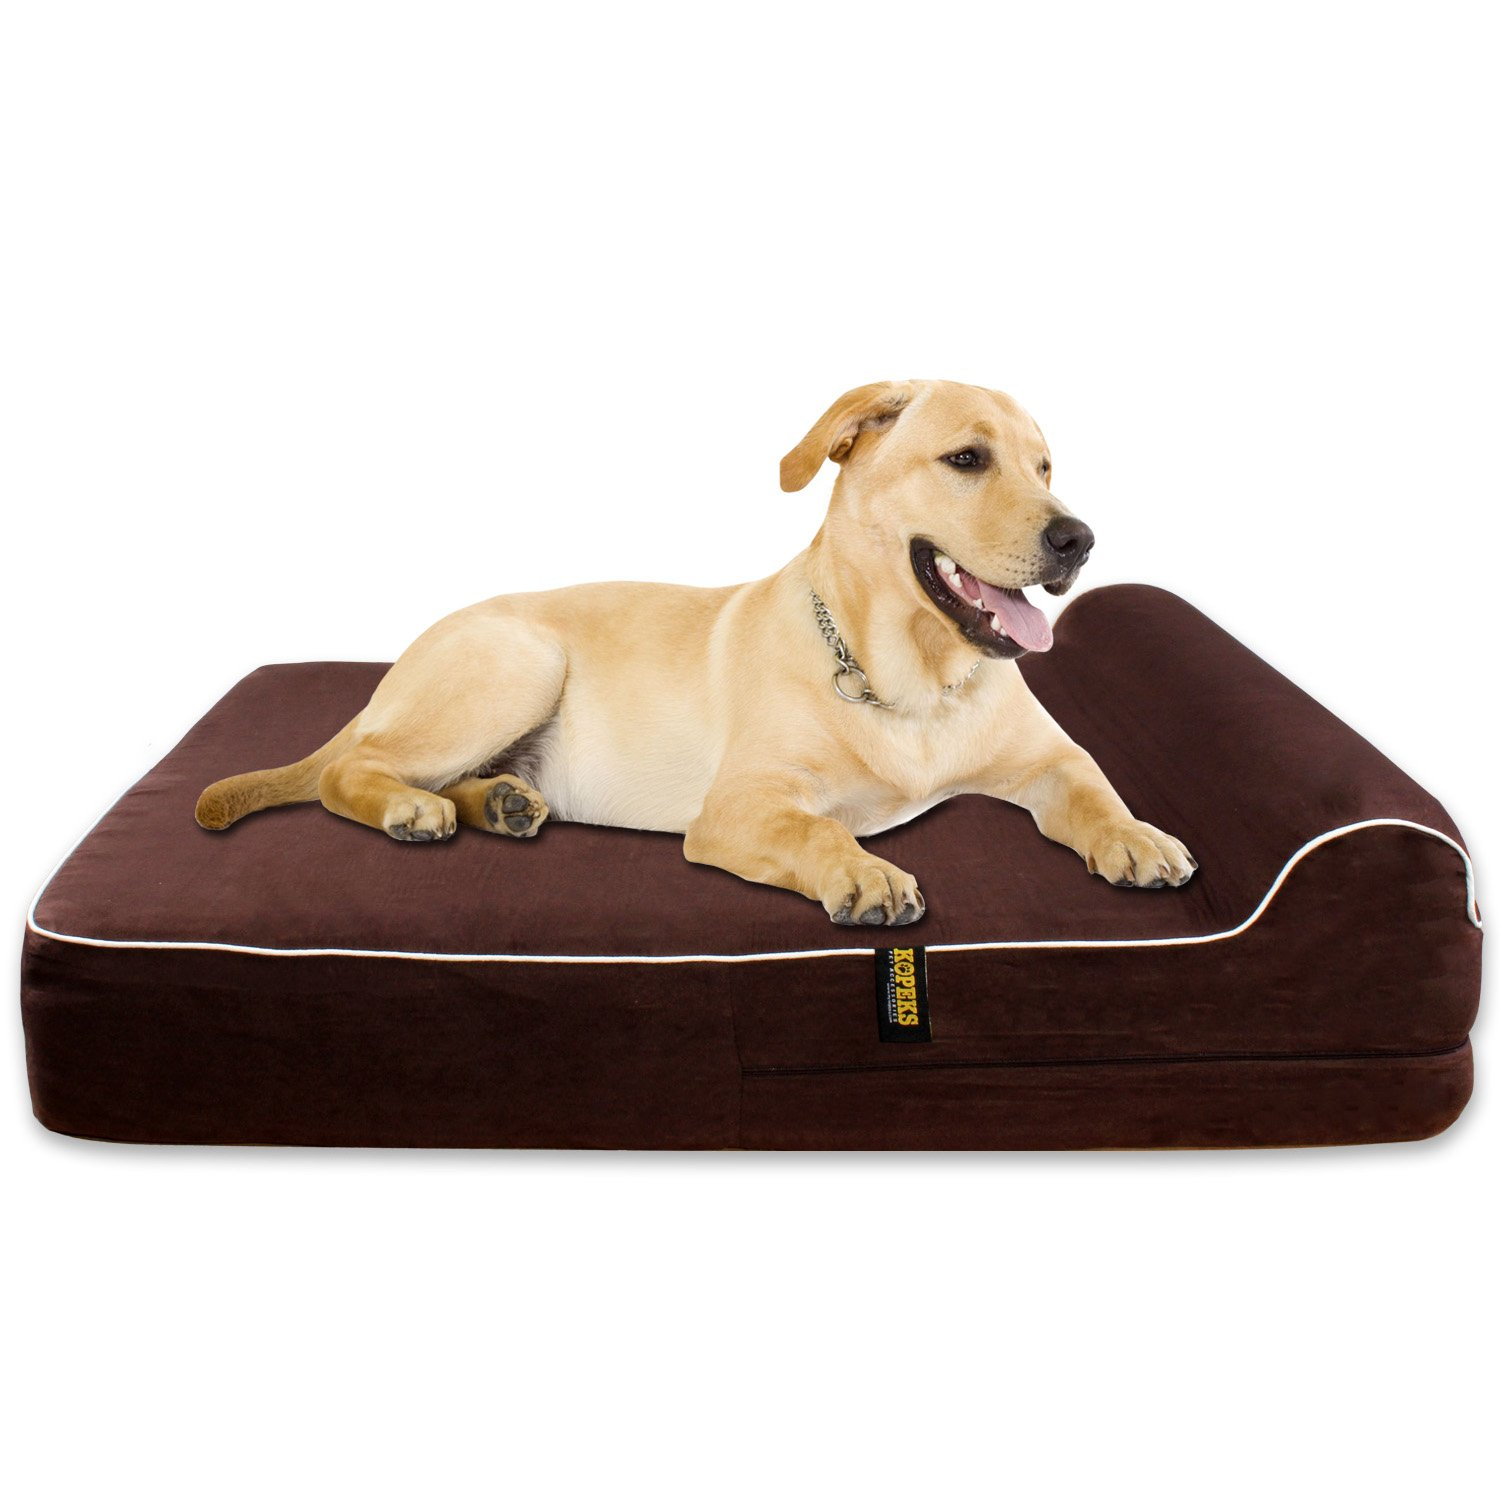 Extra large orthopedic dog beds best price - Amazon Com Extra Large 7 Thick Orthopedic Memory Foam Dog Bed With 3 Pillow Includes Waterproof Inner Protector Dark Chocolate Color Xl Pet